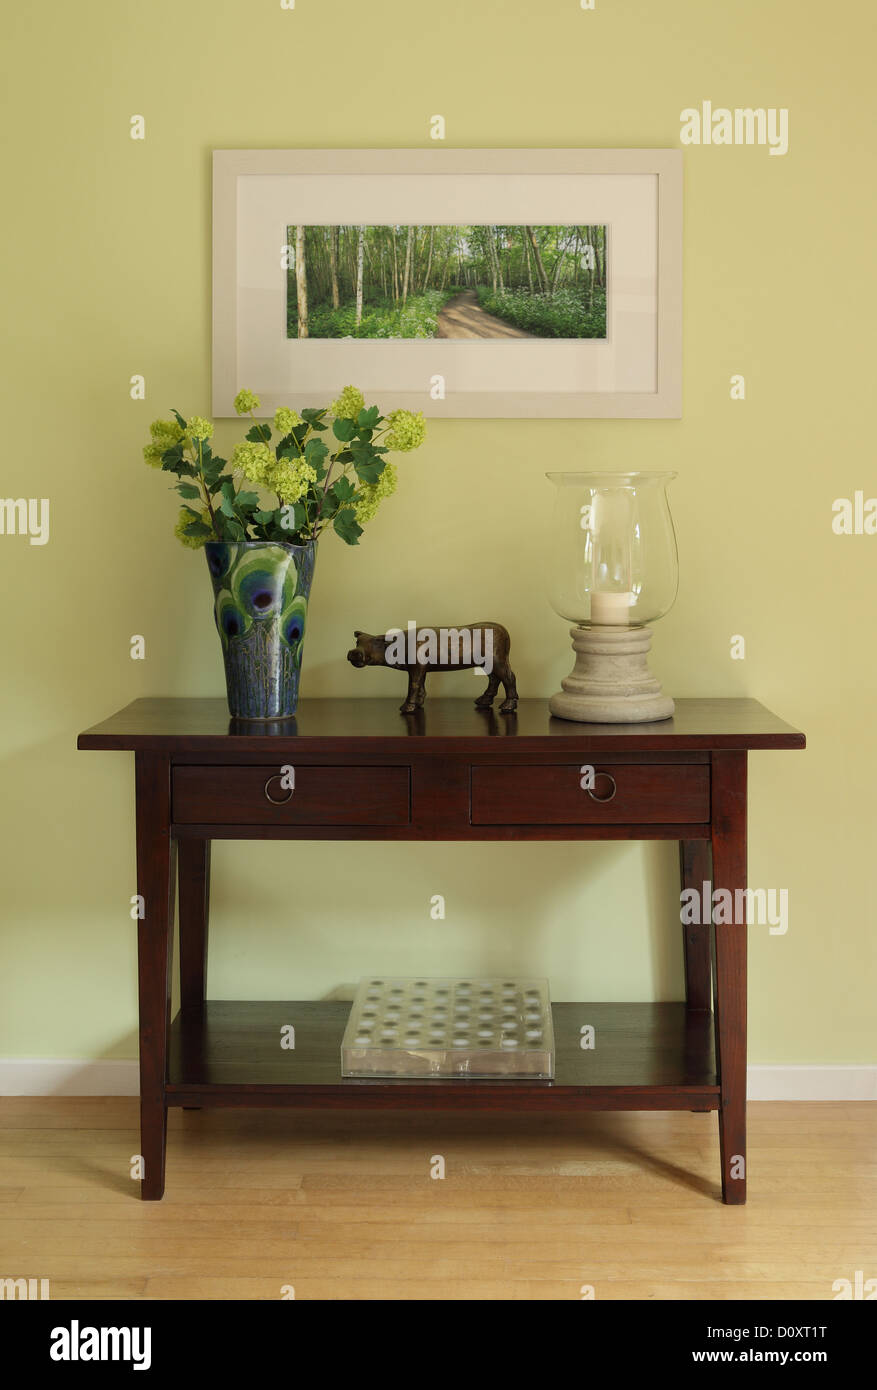 Sideboard with ornaments and vase - Stock Image